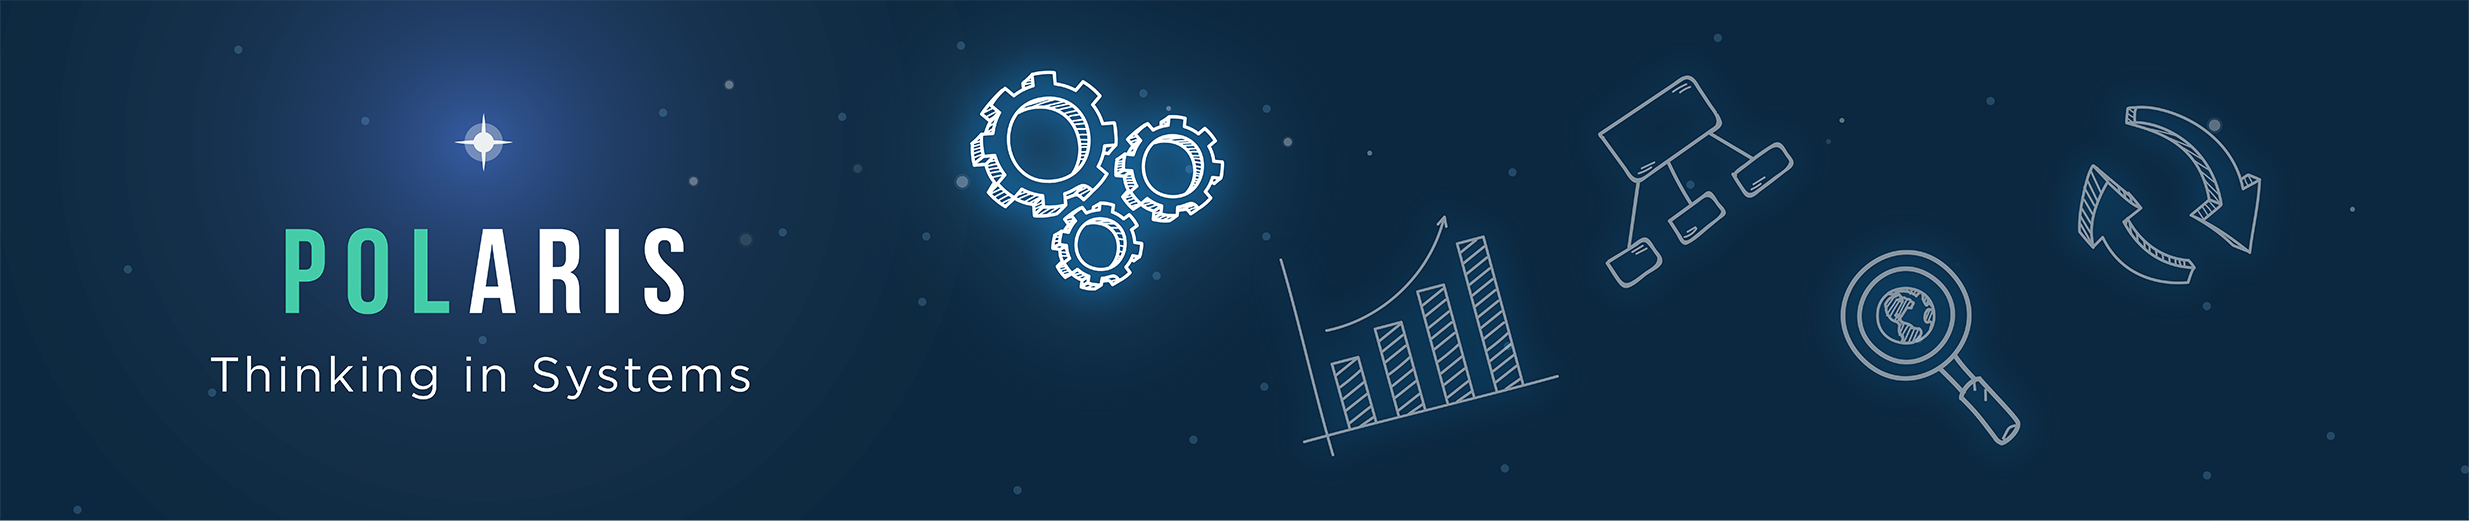 Banner at the the top of the page that says 'POLARIS Thinking in Systems' and has an illustration of a star-filled sky with constellation-like gears, a bar chart, a process map, magnifying glass, and arrows.